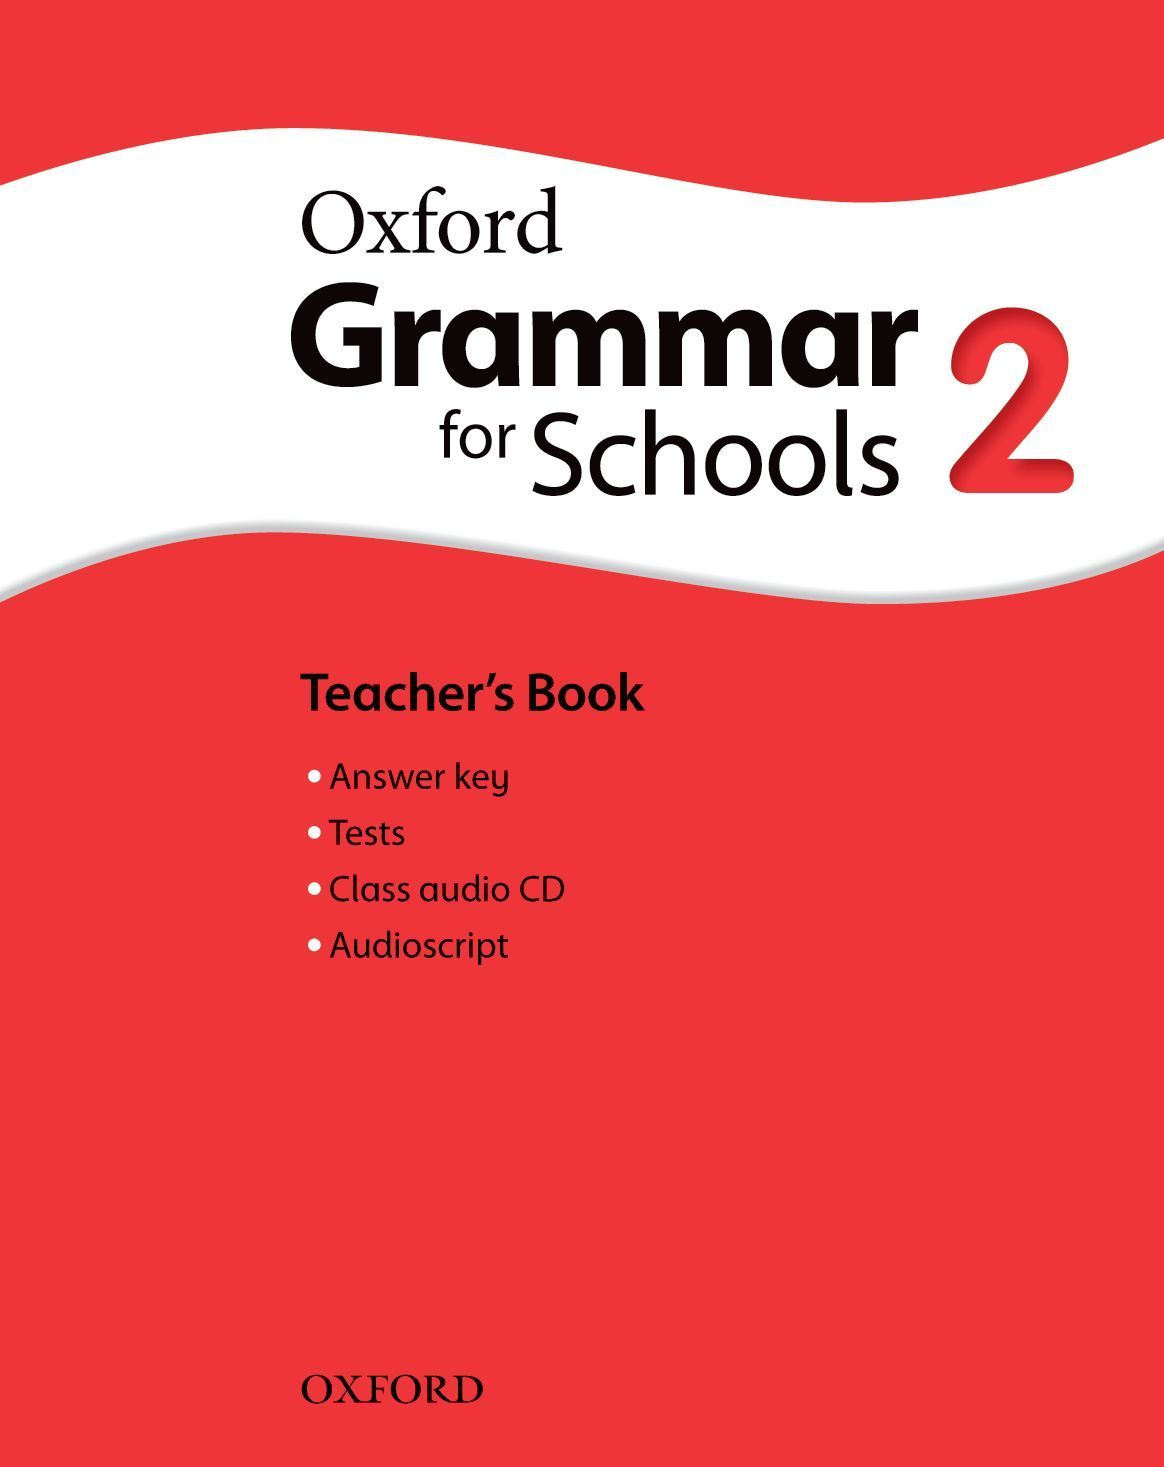 Oxford Grammar for Schools 2 Teacher's book & Audio - 1